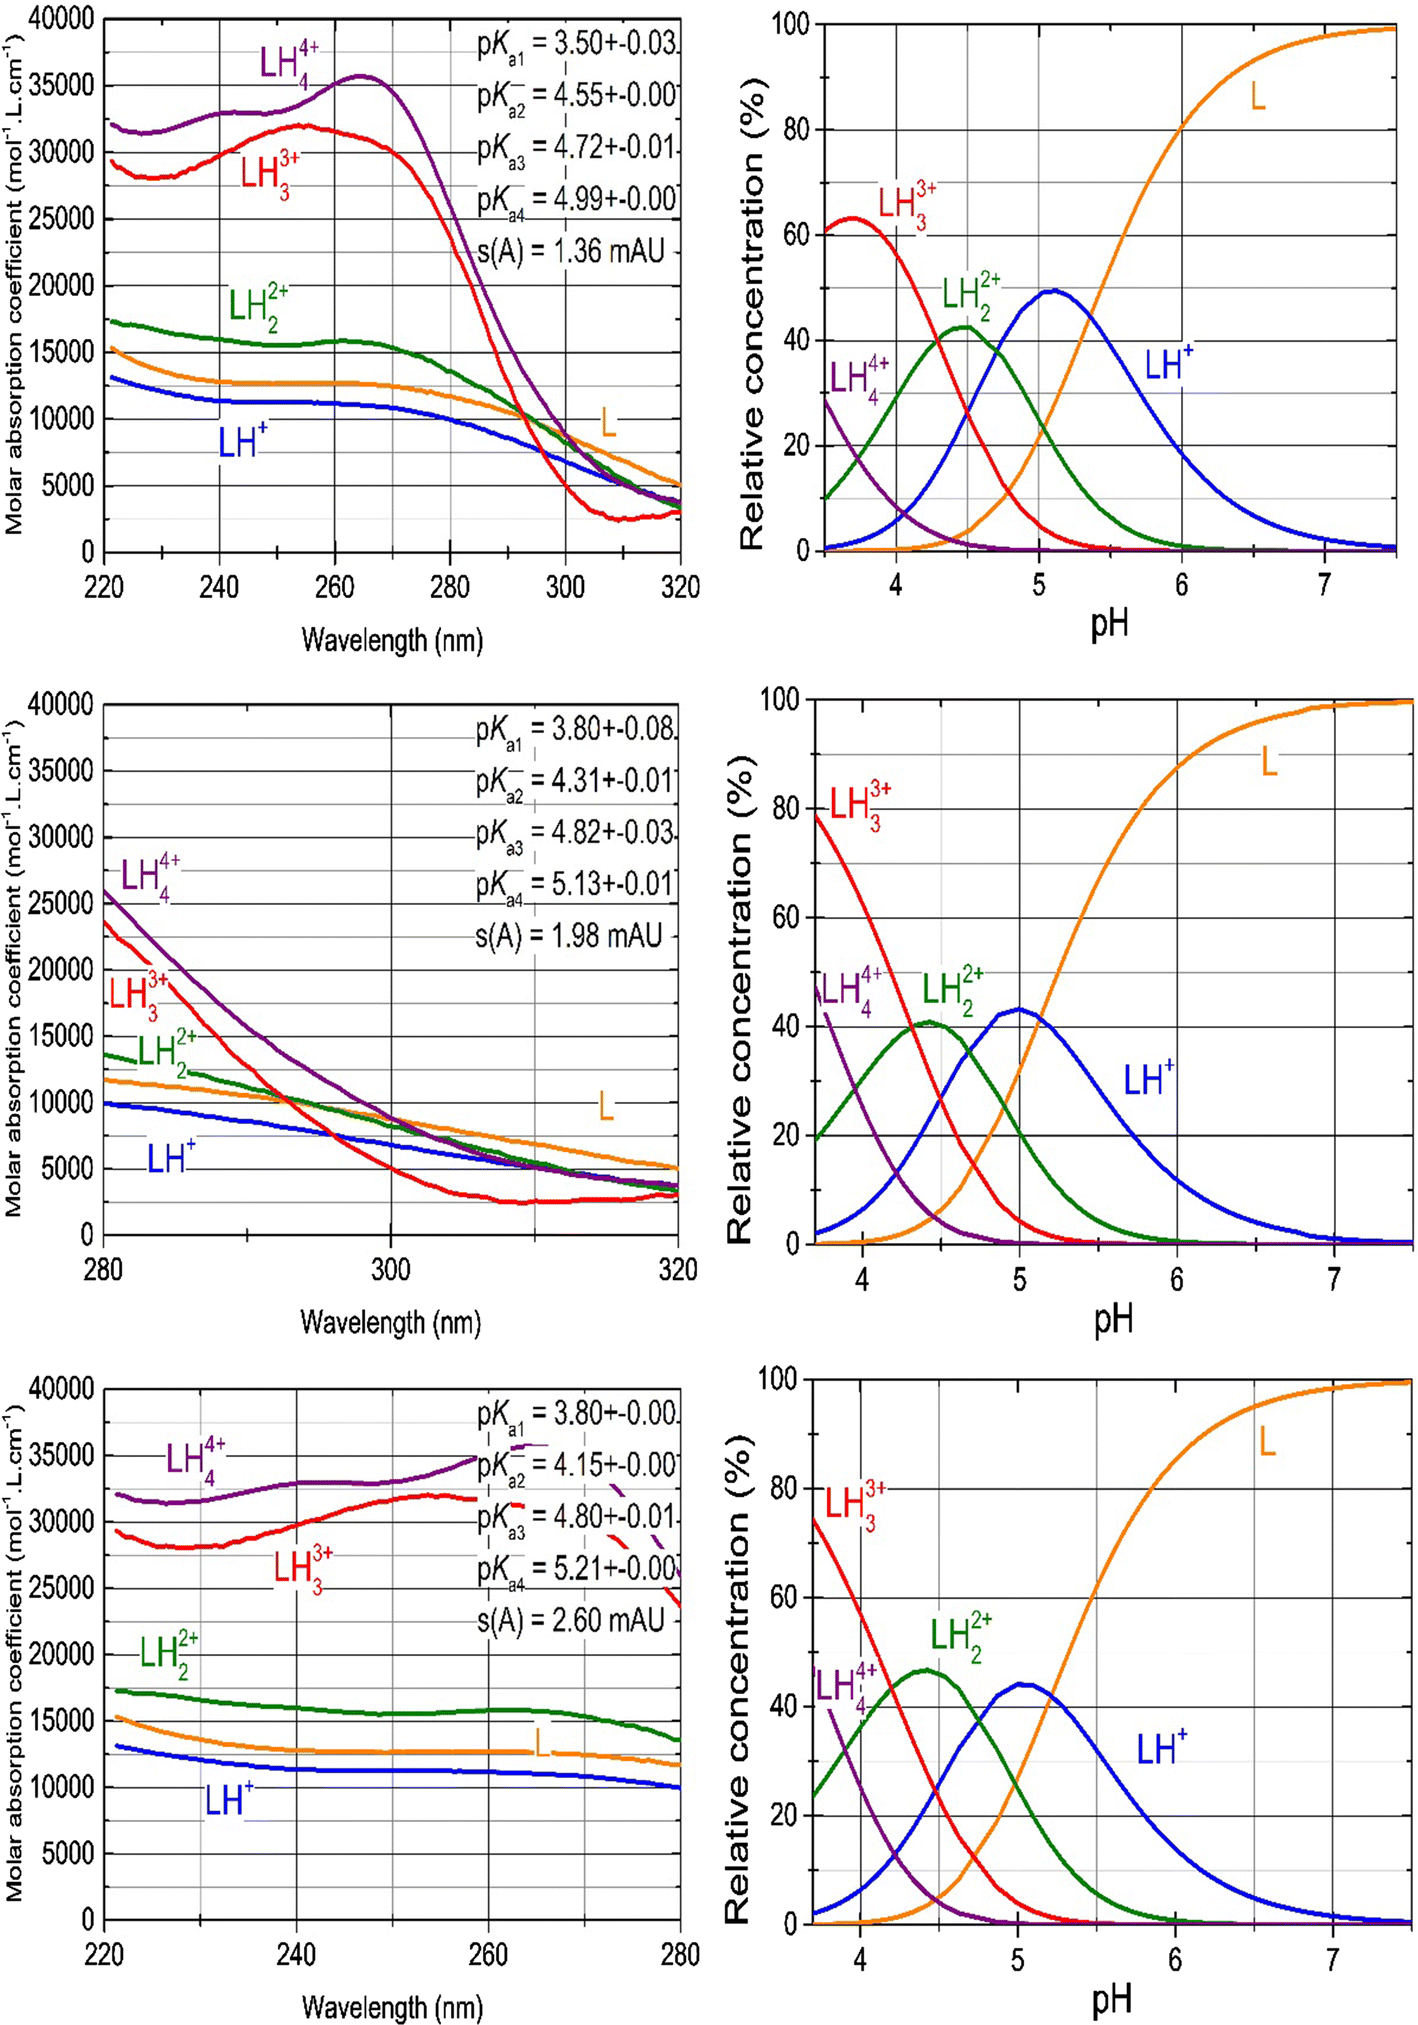 A Search for the Protonation Model with Thermodynamic